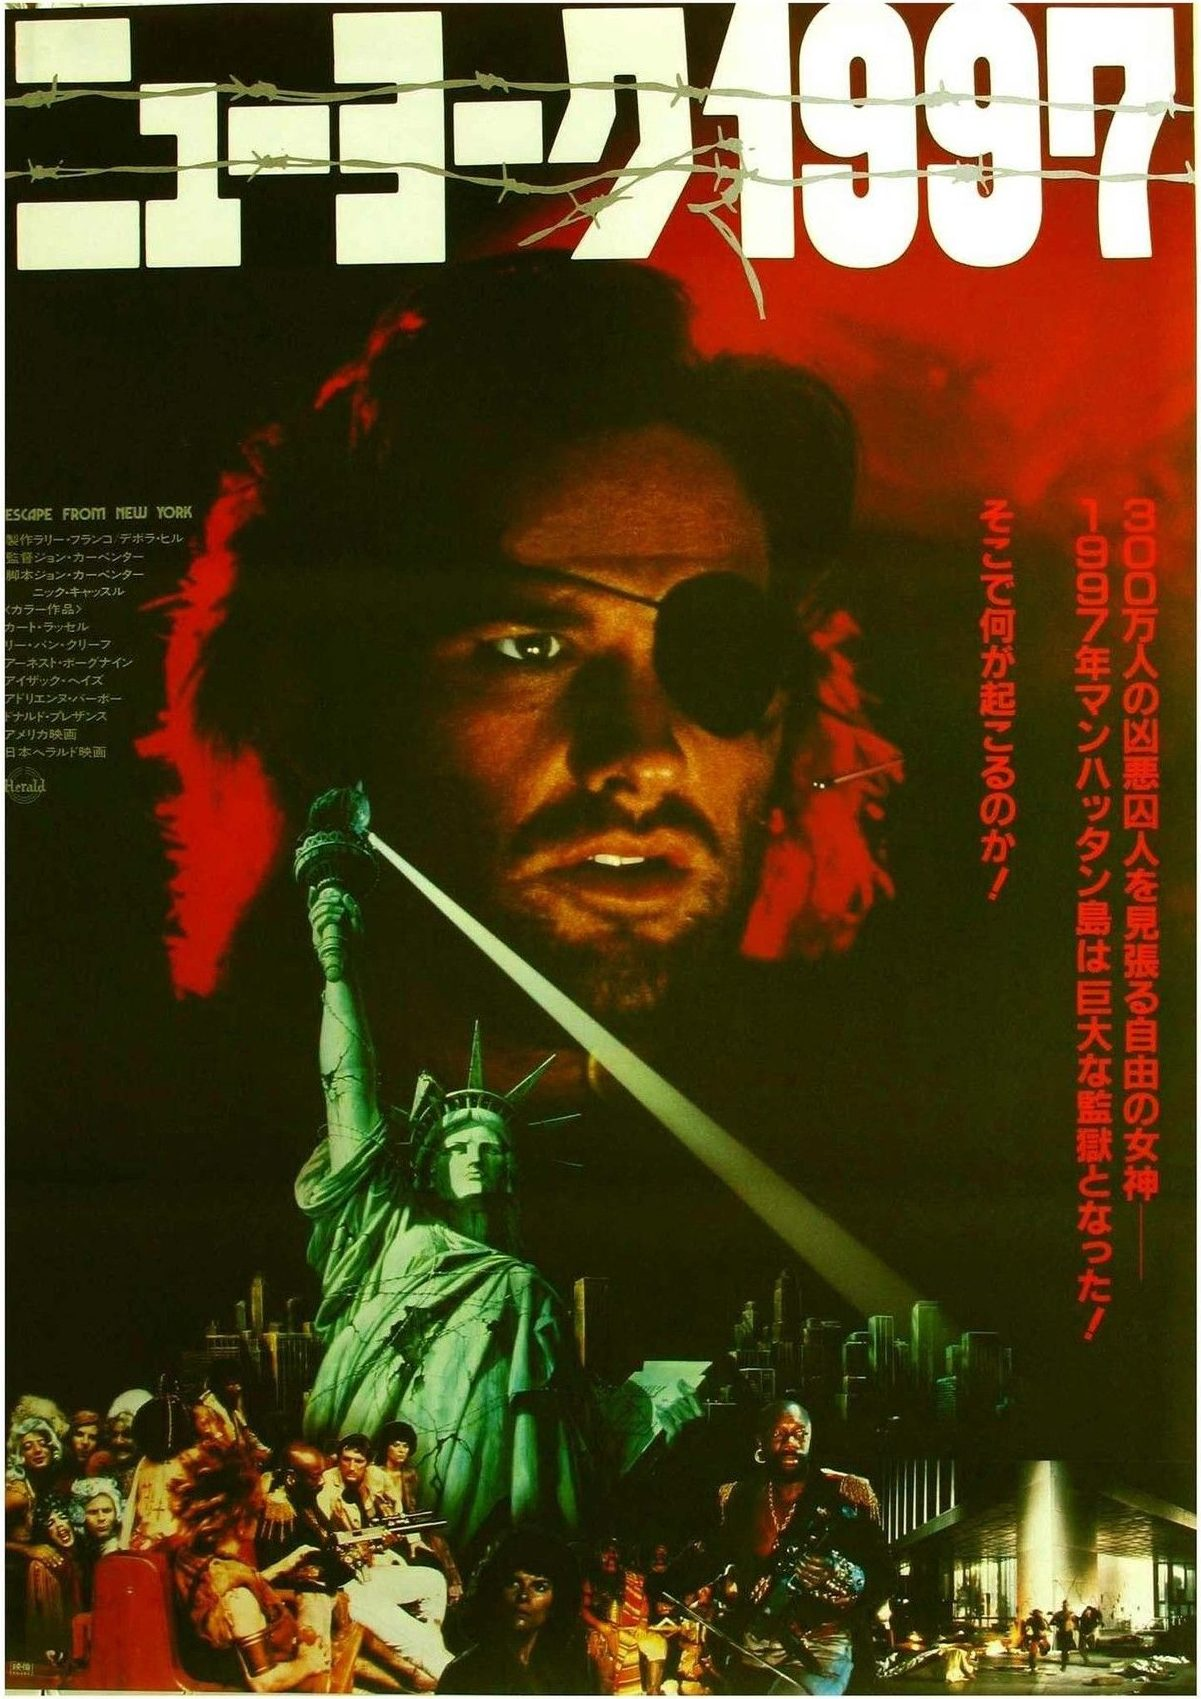 Escape From New York Japanese poster